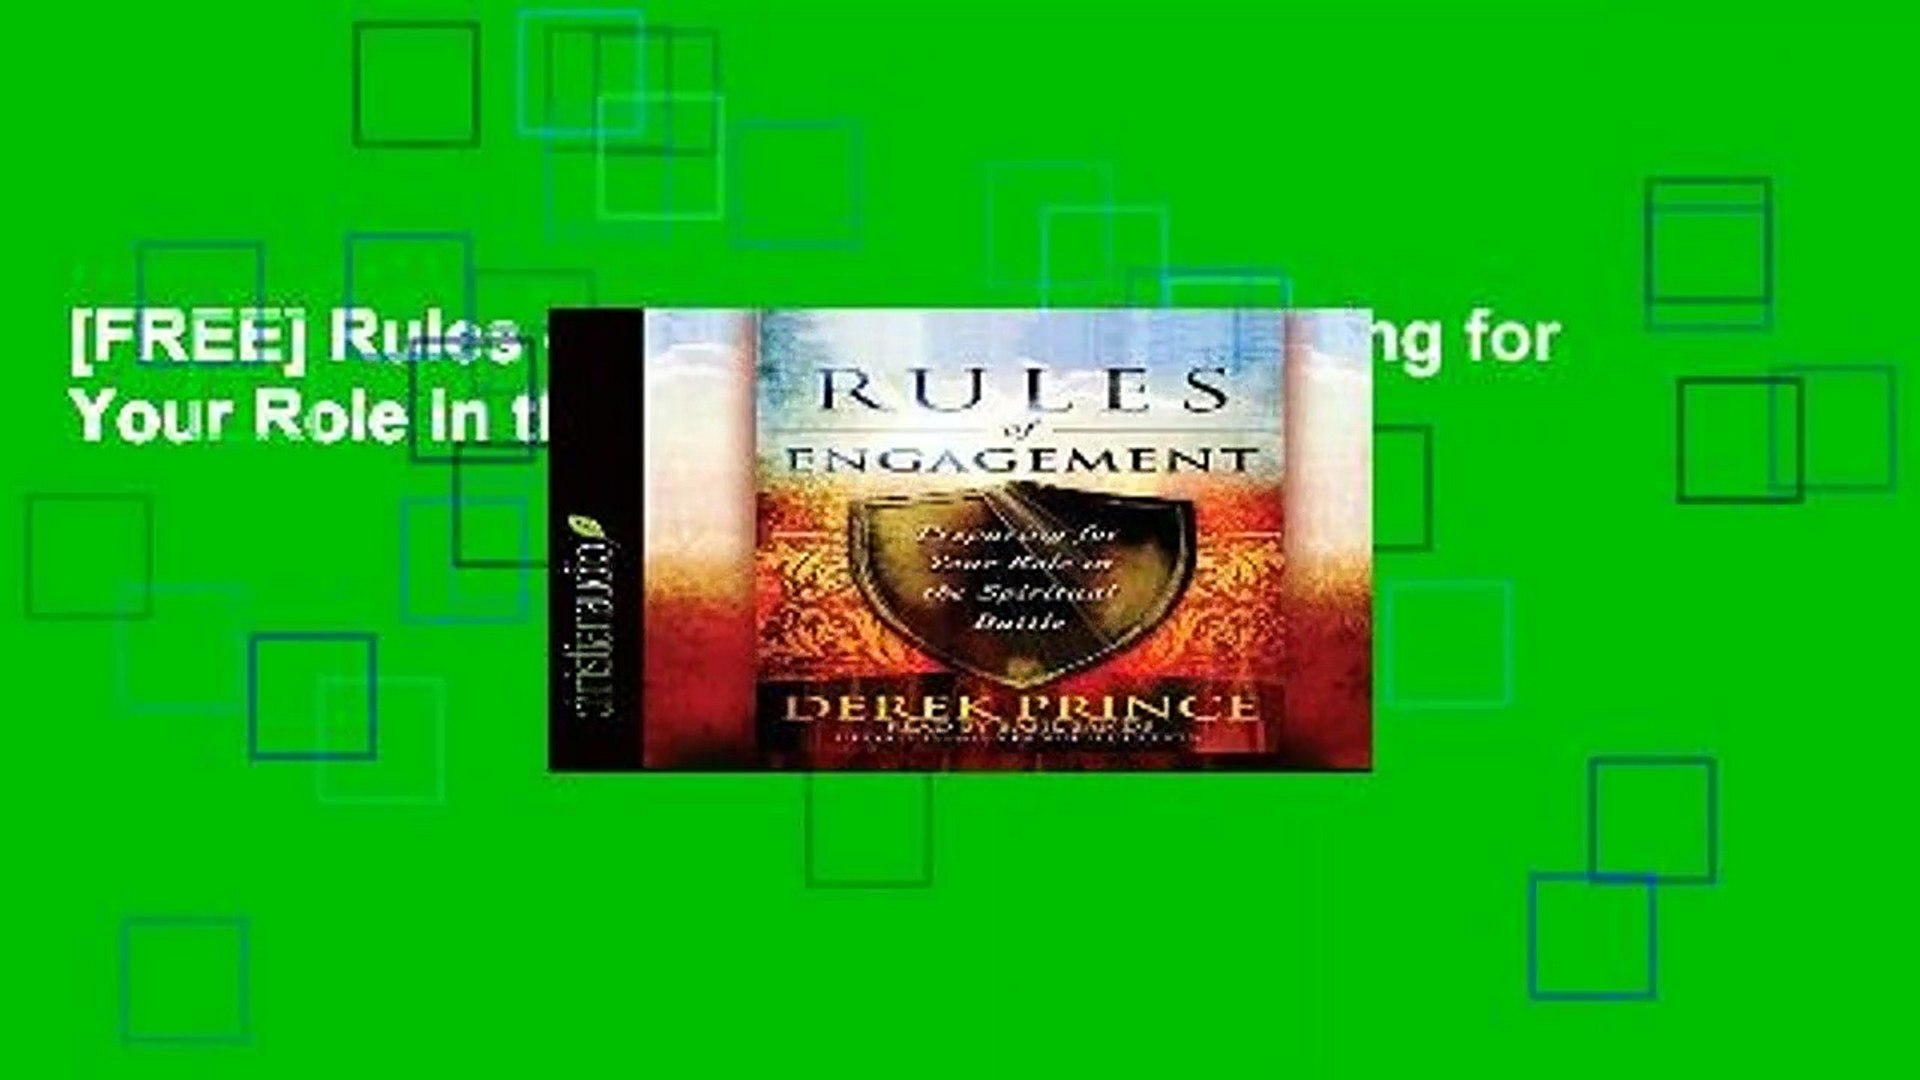 [FREE] Rules of Engagement: Preparing for Your Role in the Spiritual Battle